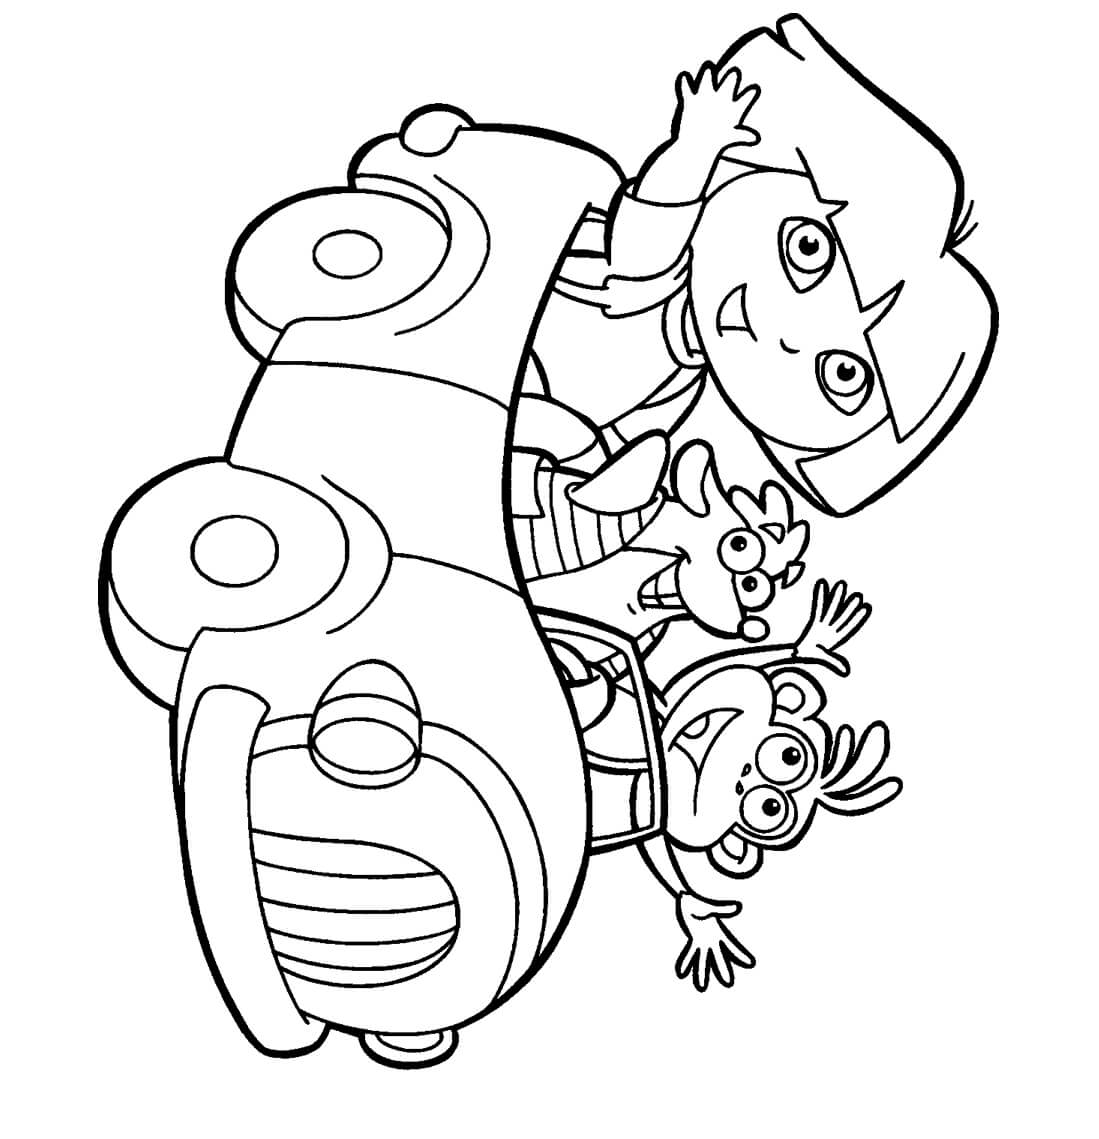 dora free coloring pages awesome dora coloring sheets coloring pages for kids on pages dora coloring free